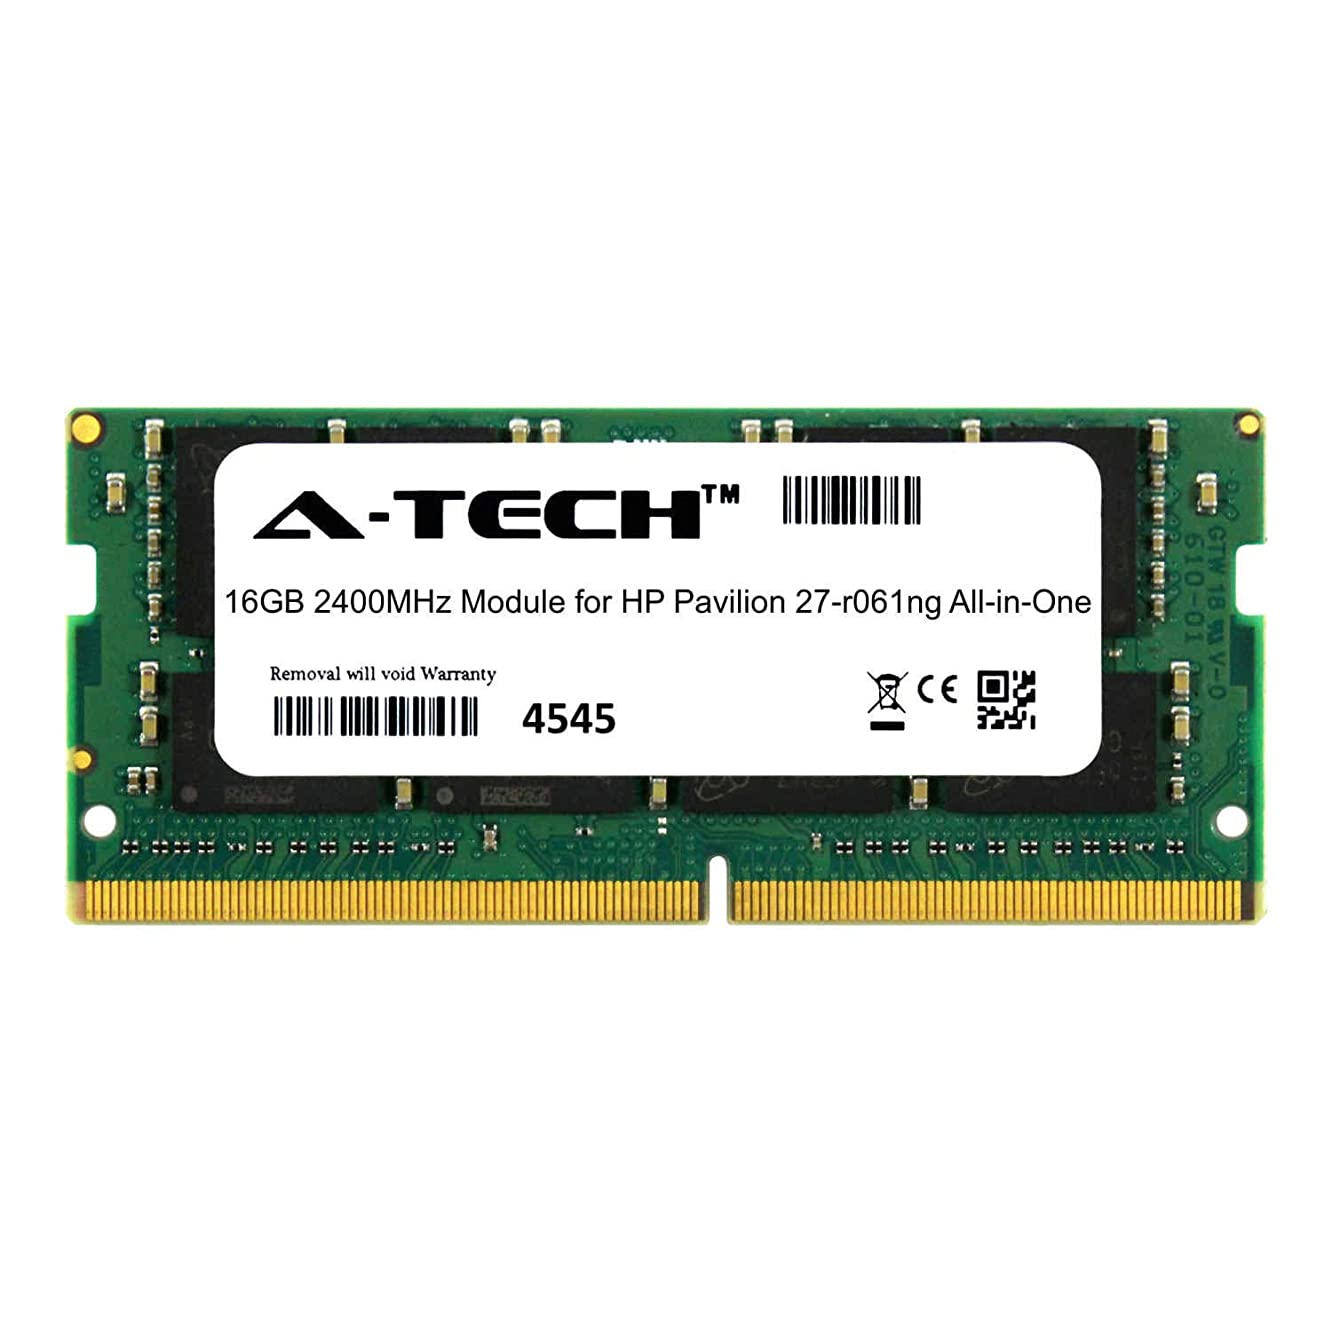 A-Tech 16GB Module for HP Pavilion 27-r061ng All-in-One (AIO) Compatible DDR4 2400Mhz Memory Ram (ATMS306981A25831X1)